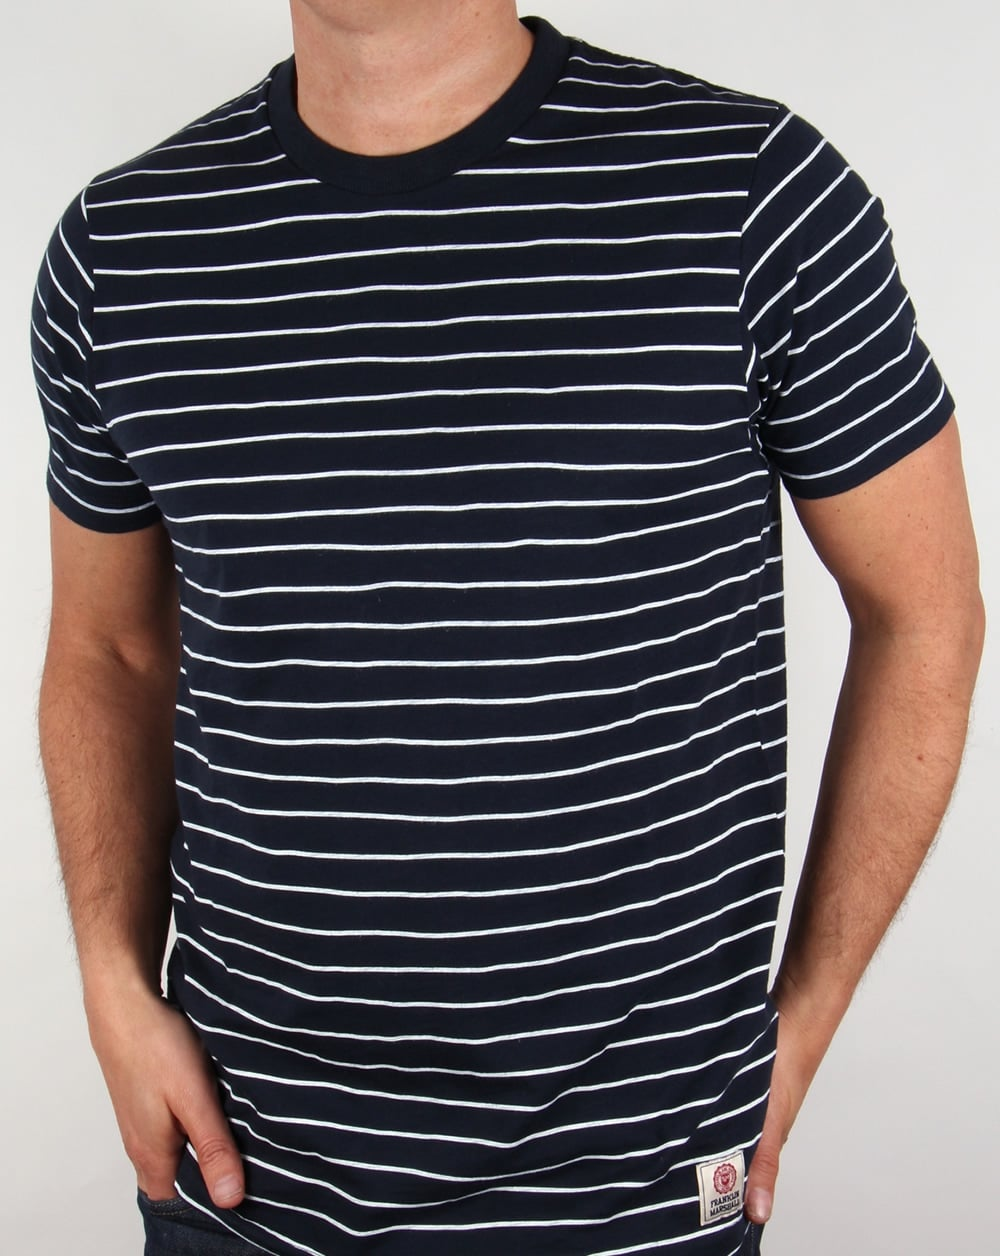 Free shipping BOTH ways on stripe shirt, from our vast selection of styles. Fast delivery, and 24/7/ real-person service with a smile. Click or call